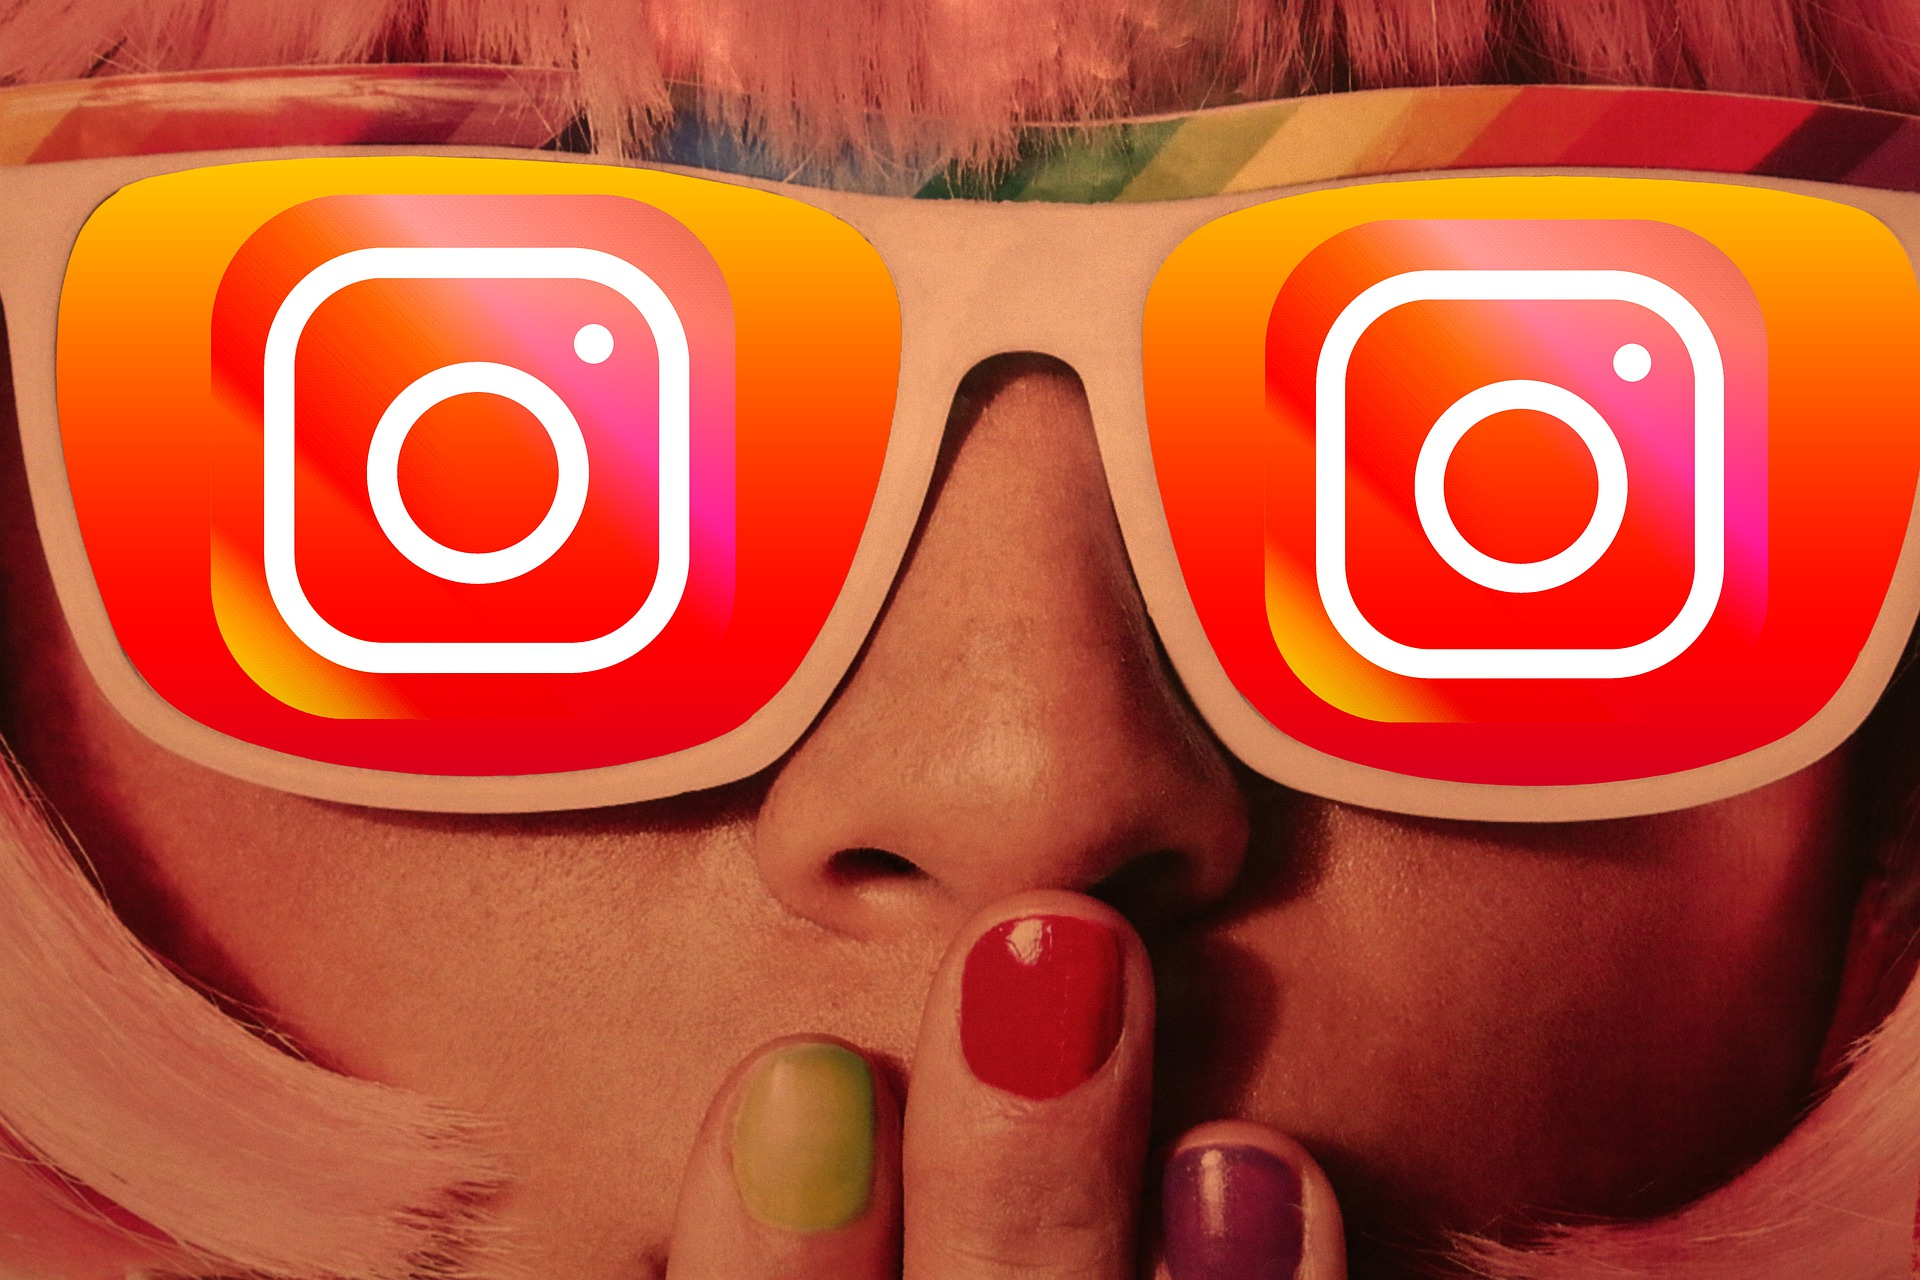 How to Promote Your Brand or Business on Instagram?